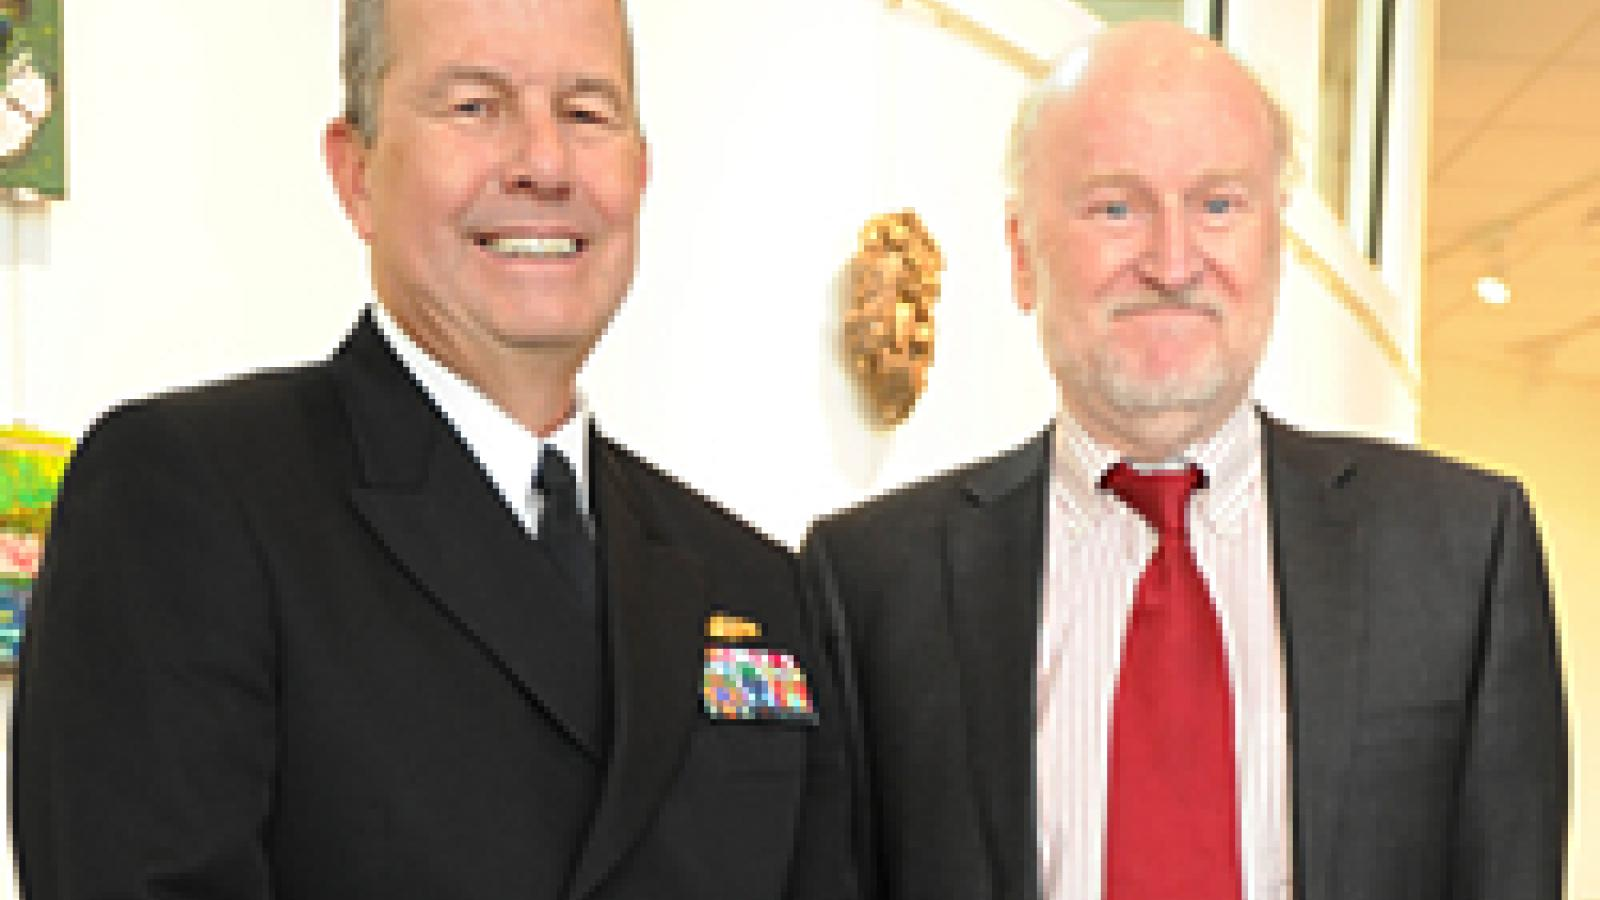 Rear Admiral Alton L. Stocks, Commander of Walter Reed National Military Medical Center, and NEA Chairman Rocco Landesman